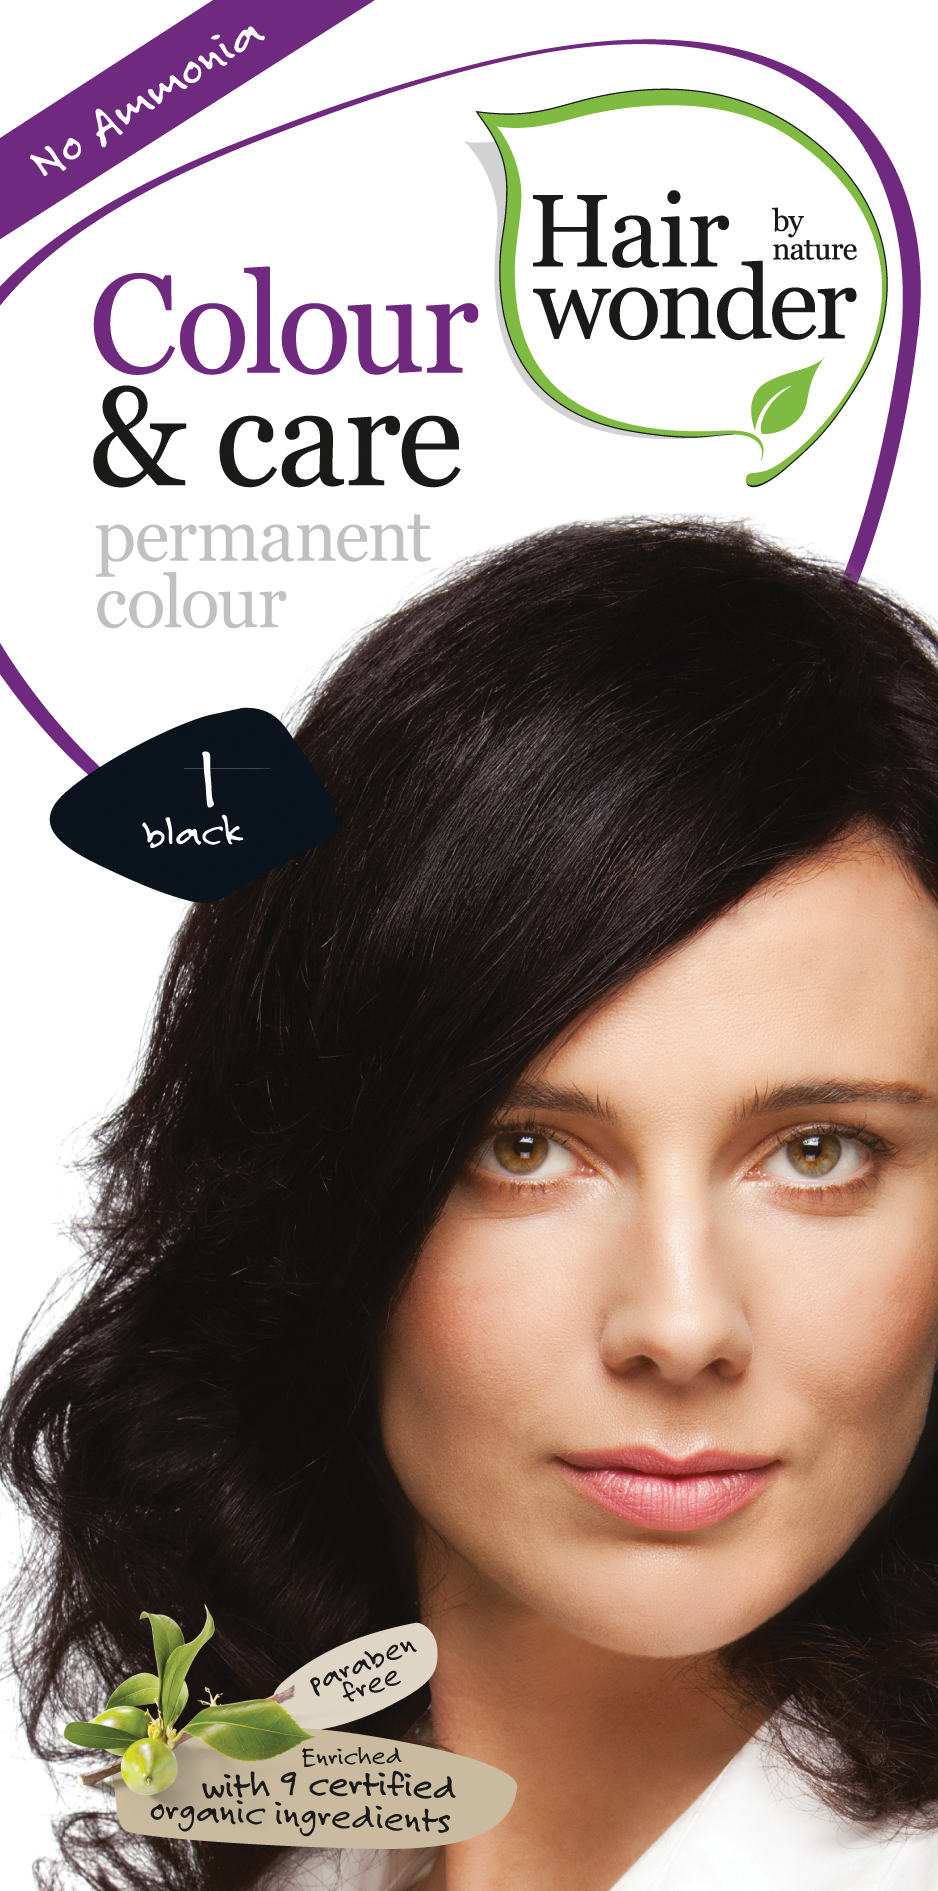 Vopsea par naturala, Colour & Care, 1 Black, Hairwonder